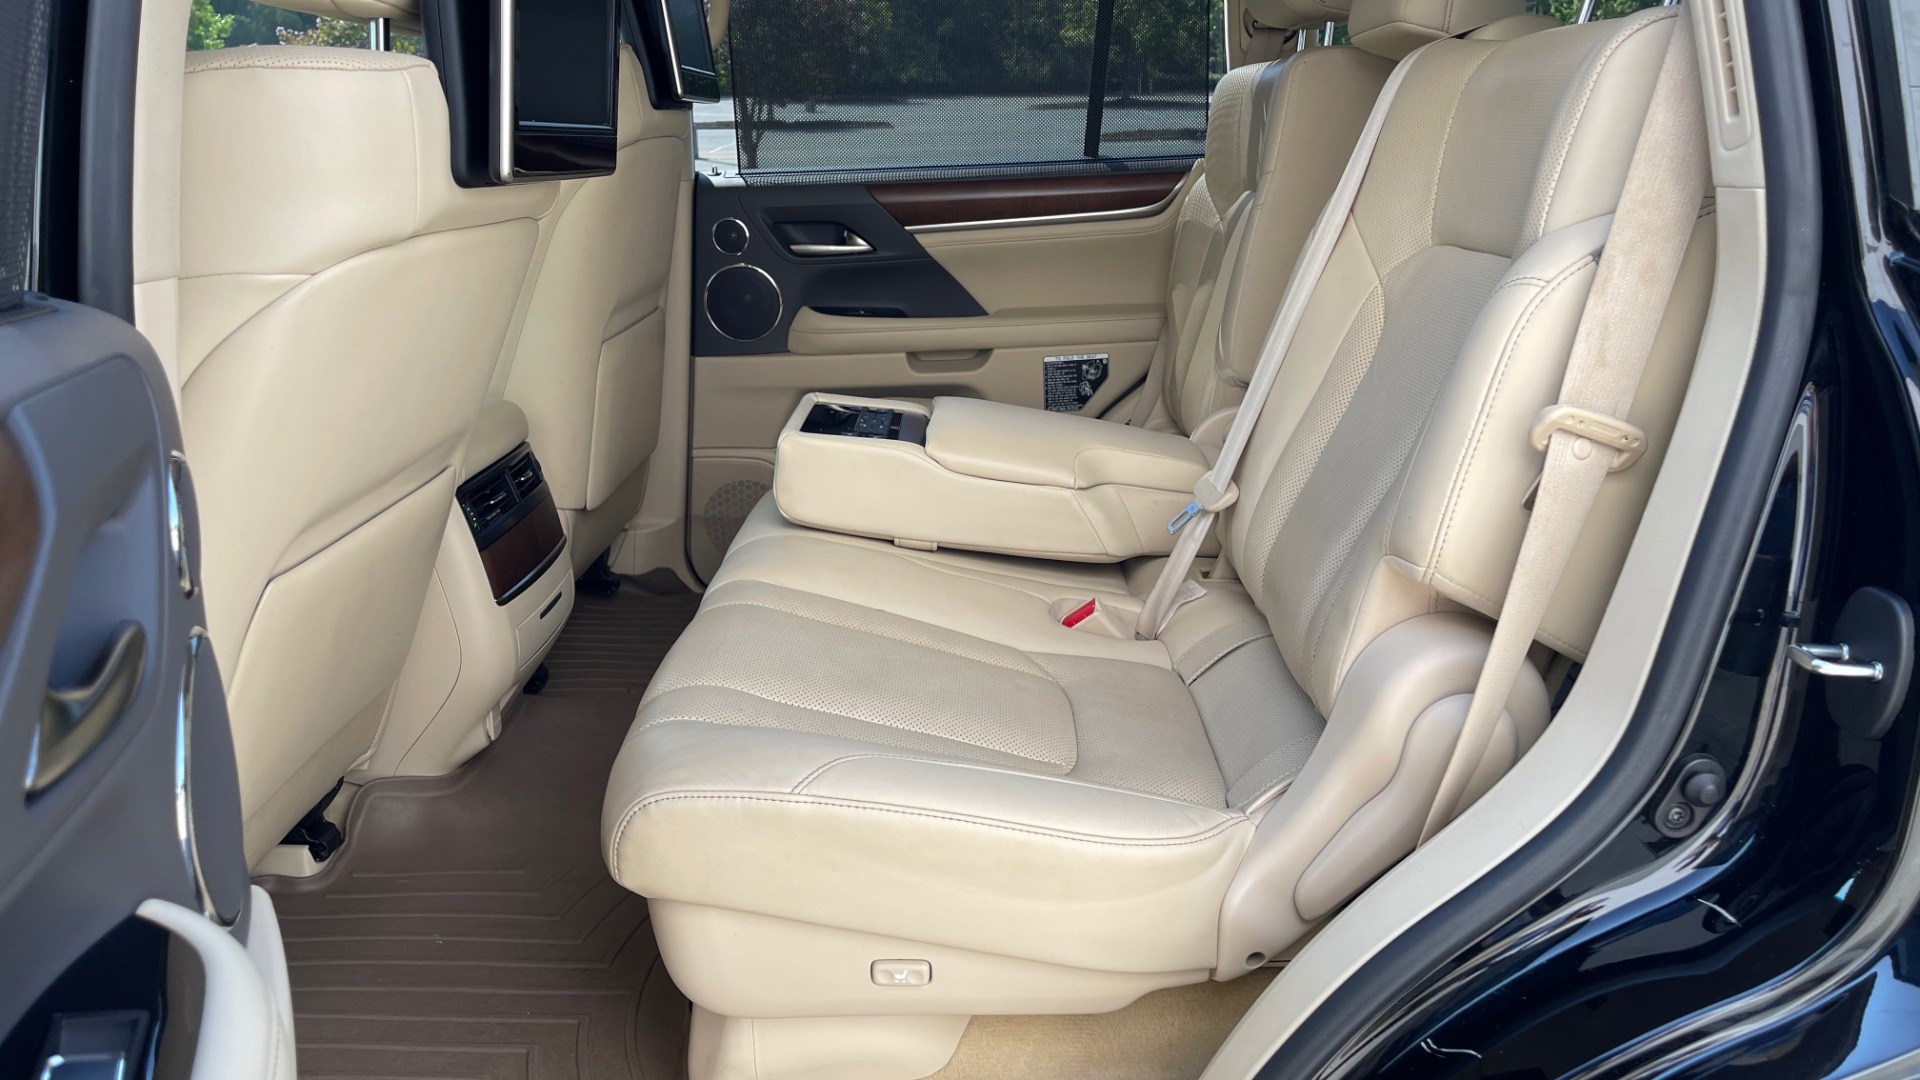 Used 2017 Lexus LX 570 LUXURY / 5.7L V8 / NAV / SUNROOF / 3-ROW / DVD / REARVIEW for sale $63,995 at Formula Imports in Charlotte NC 28227 56